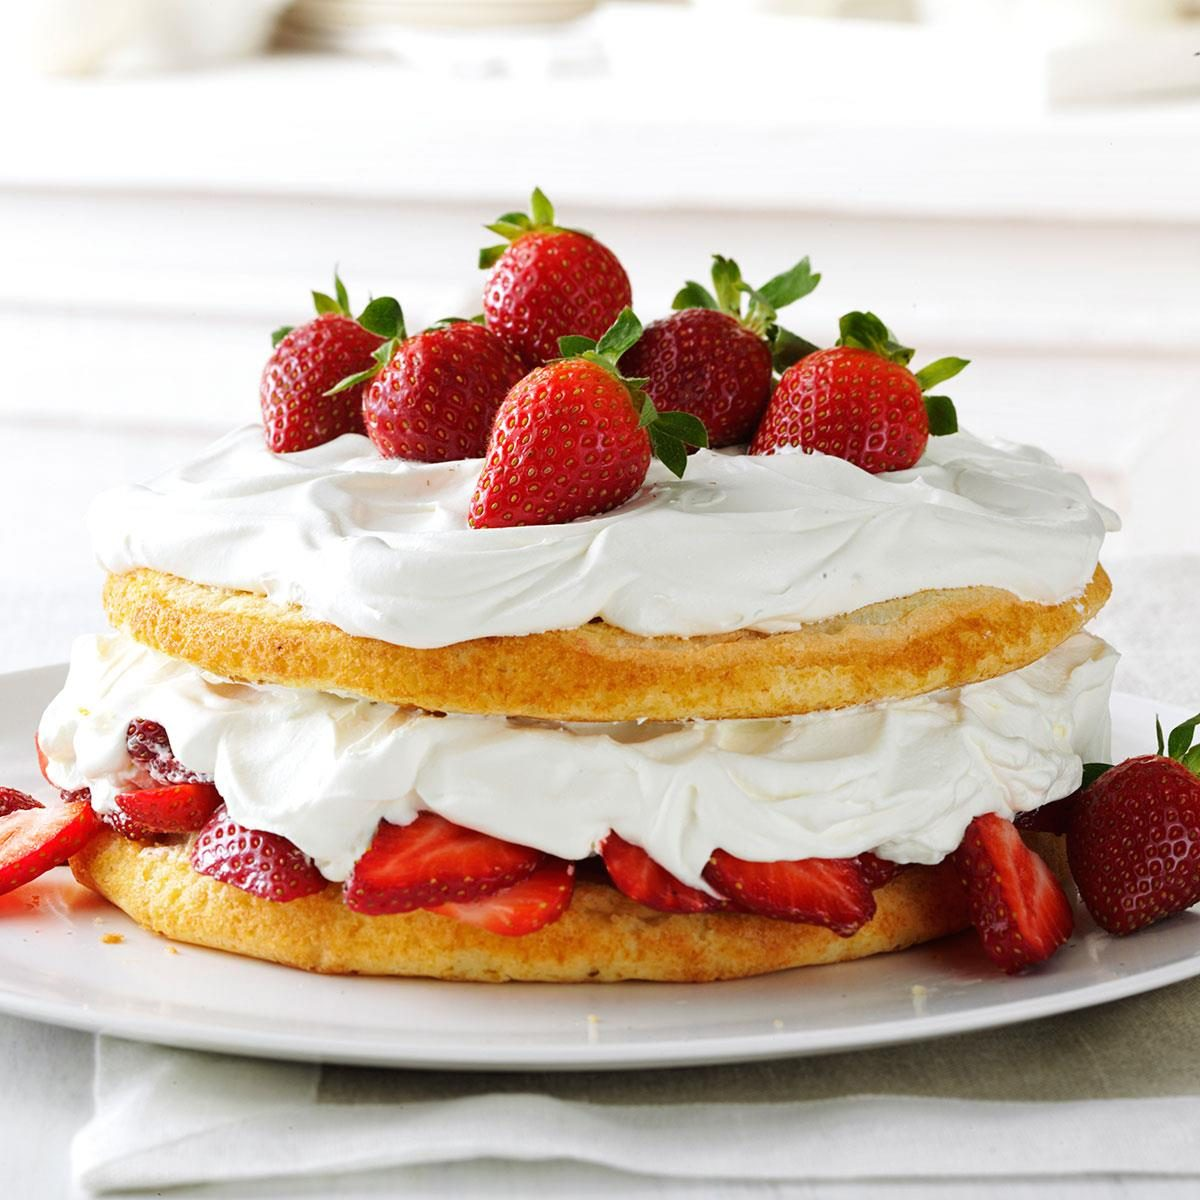 Strawberries & Cream Torte Recipe | Taste of Home